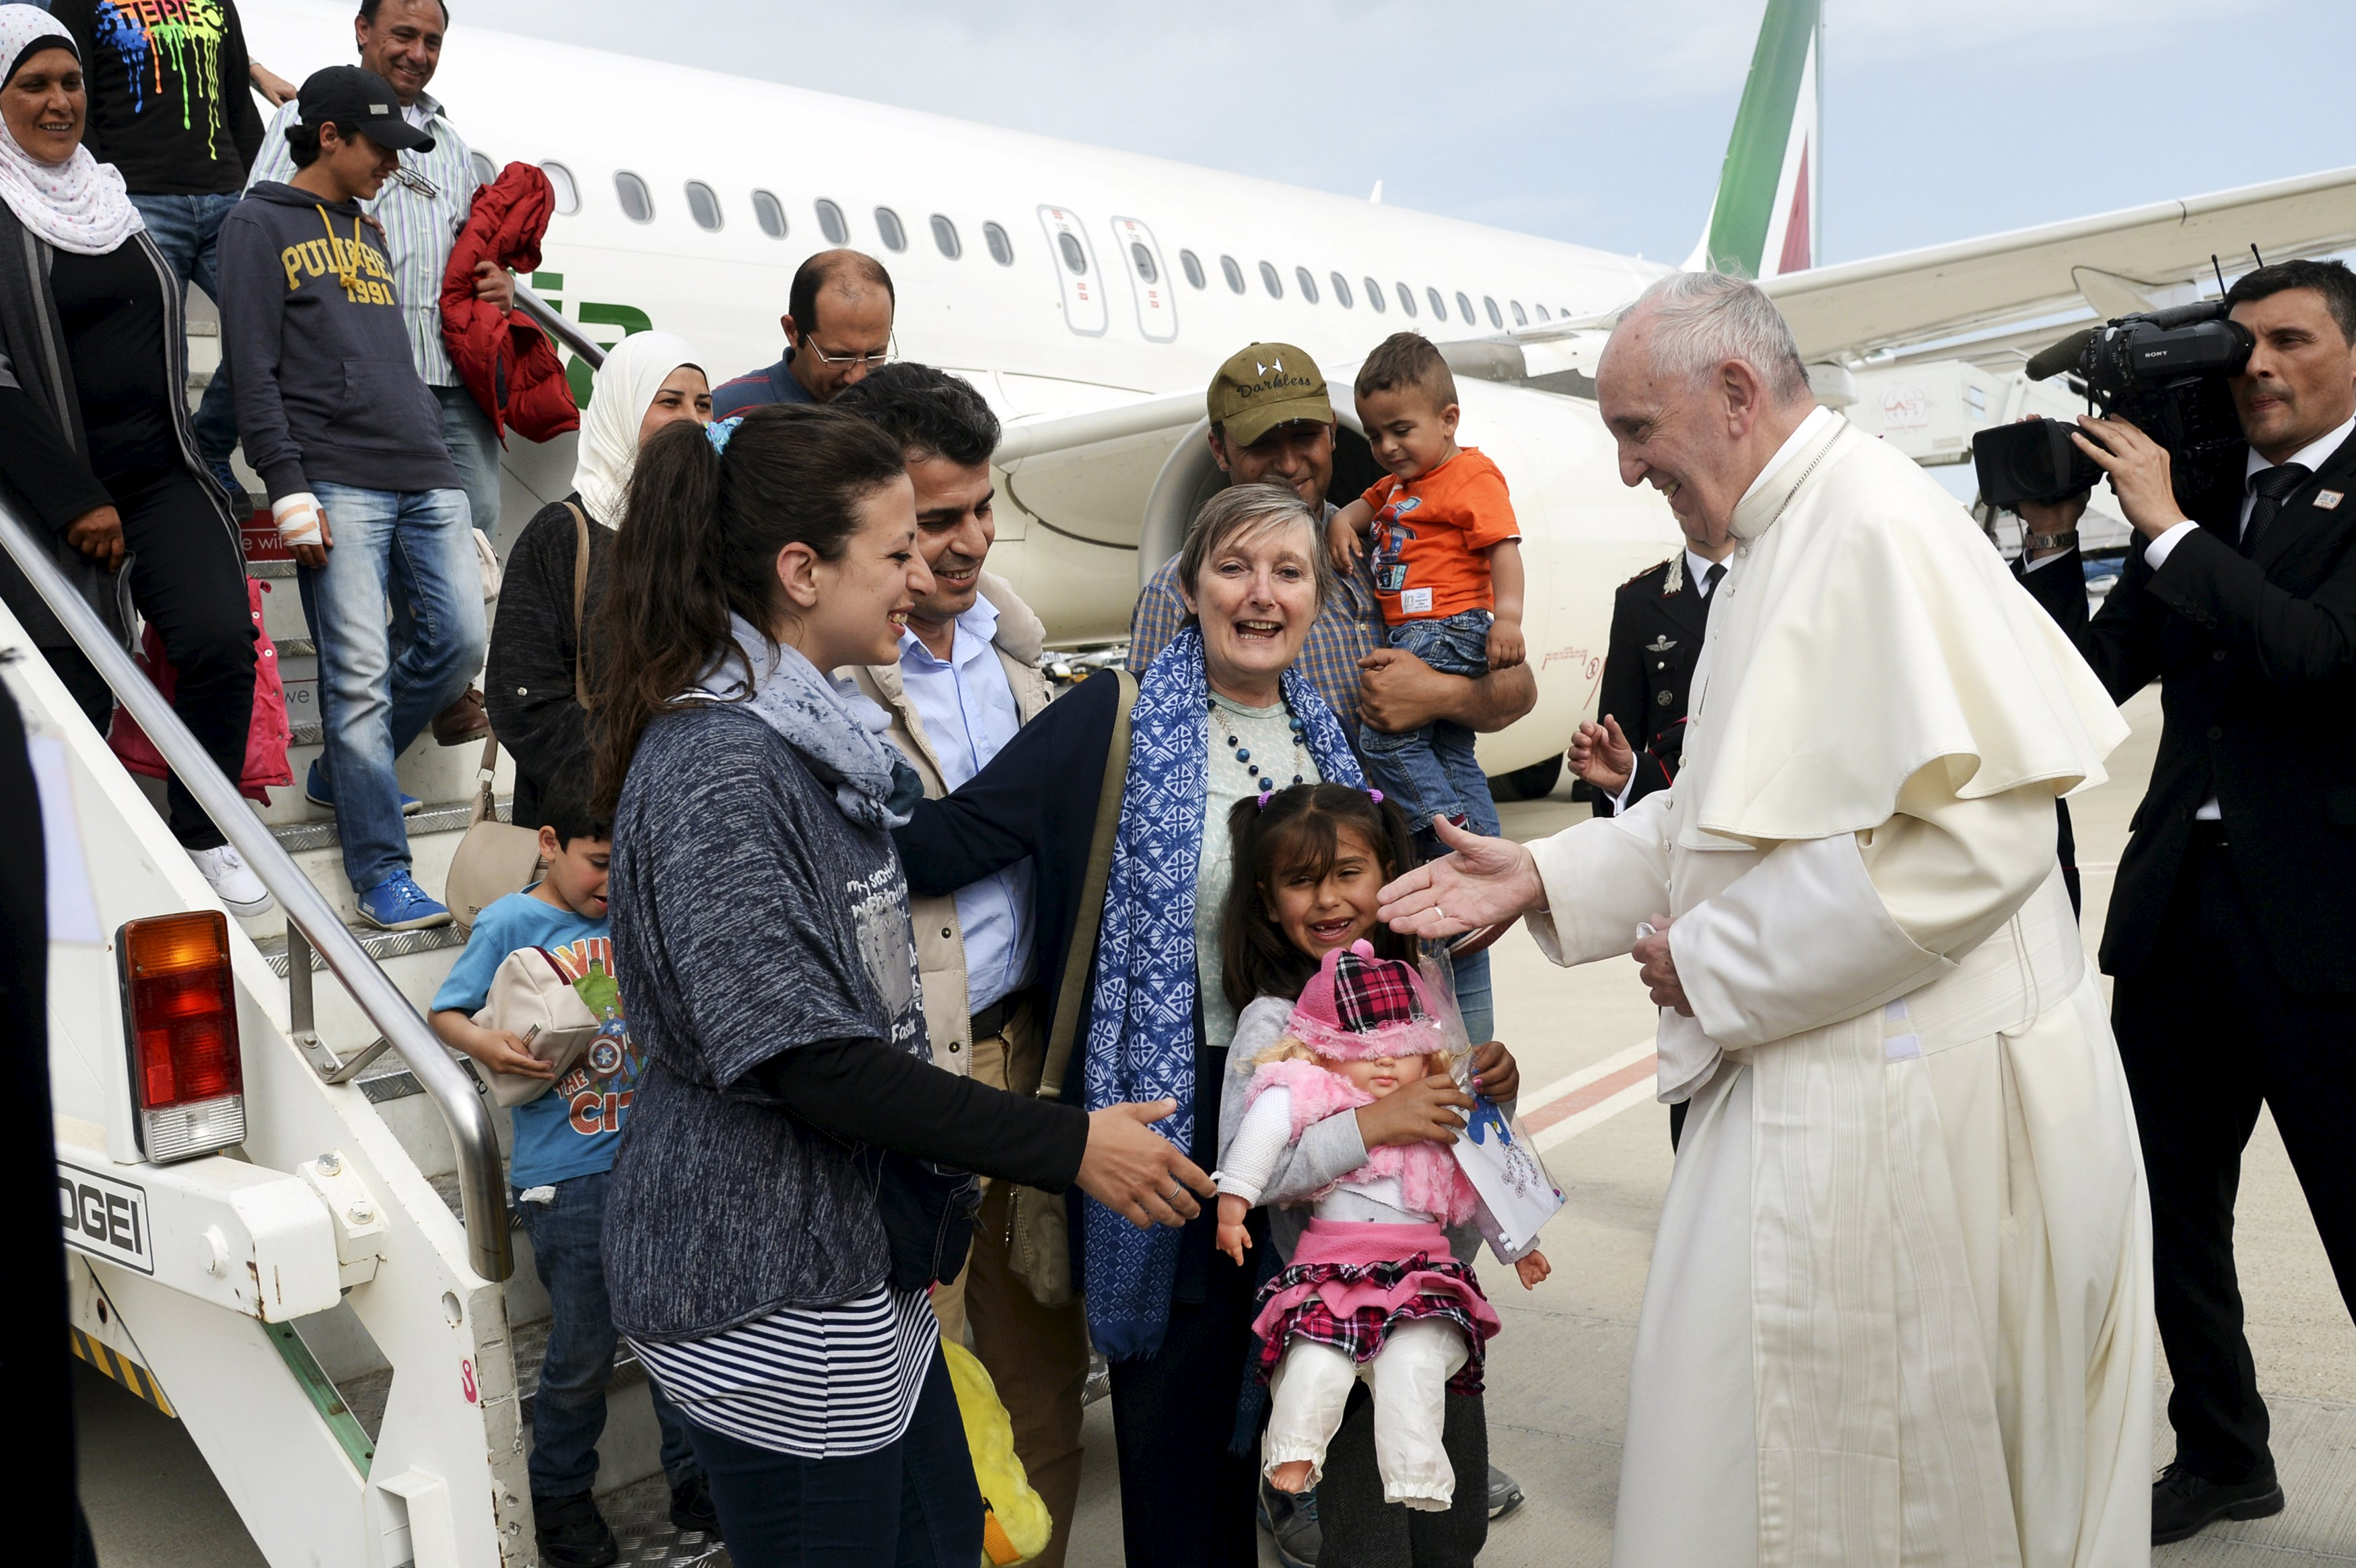 Pope returns with 12 refugees after visit to Greek island